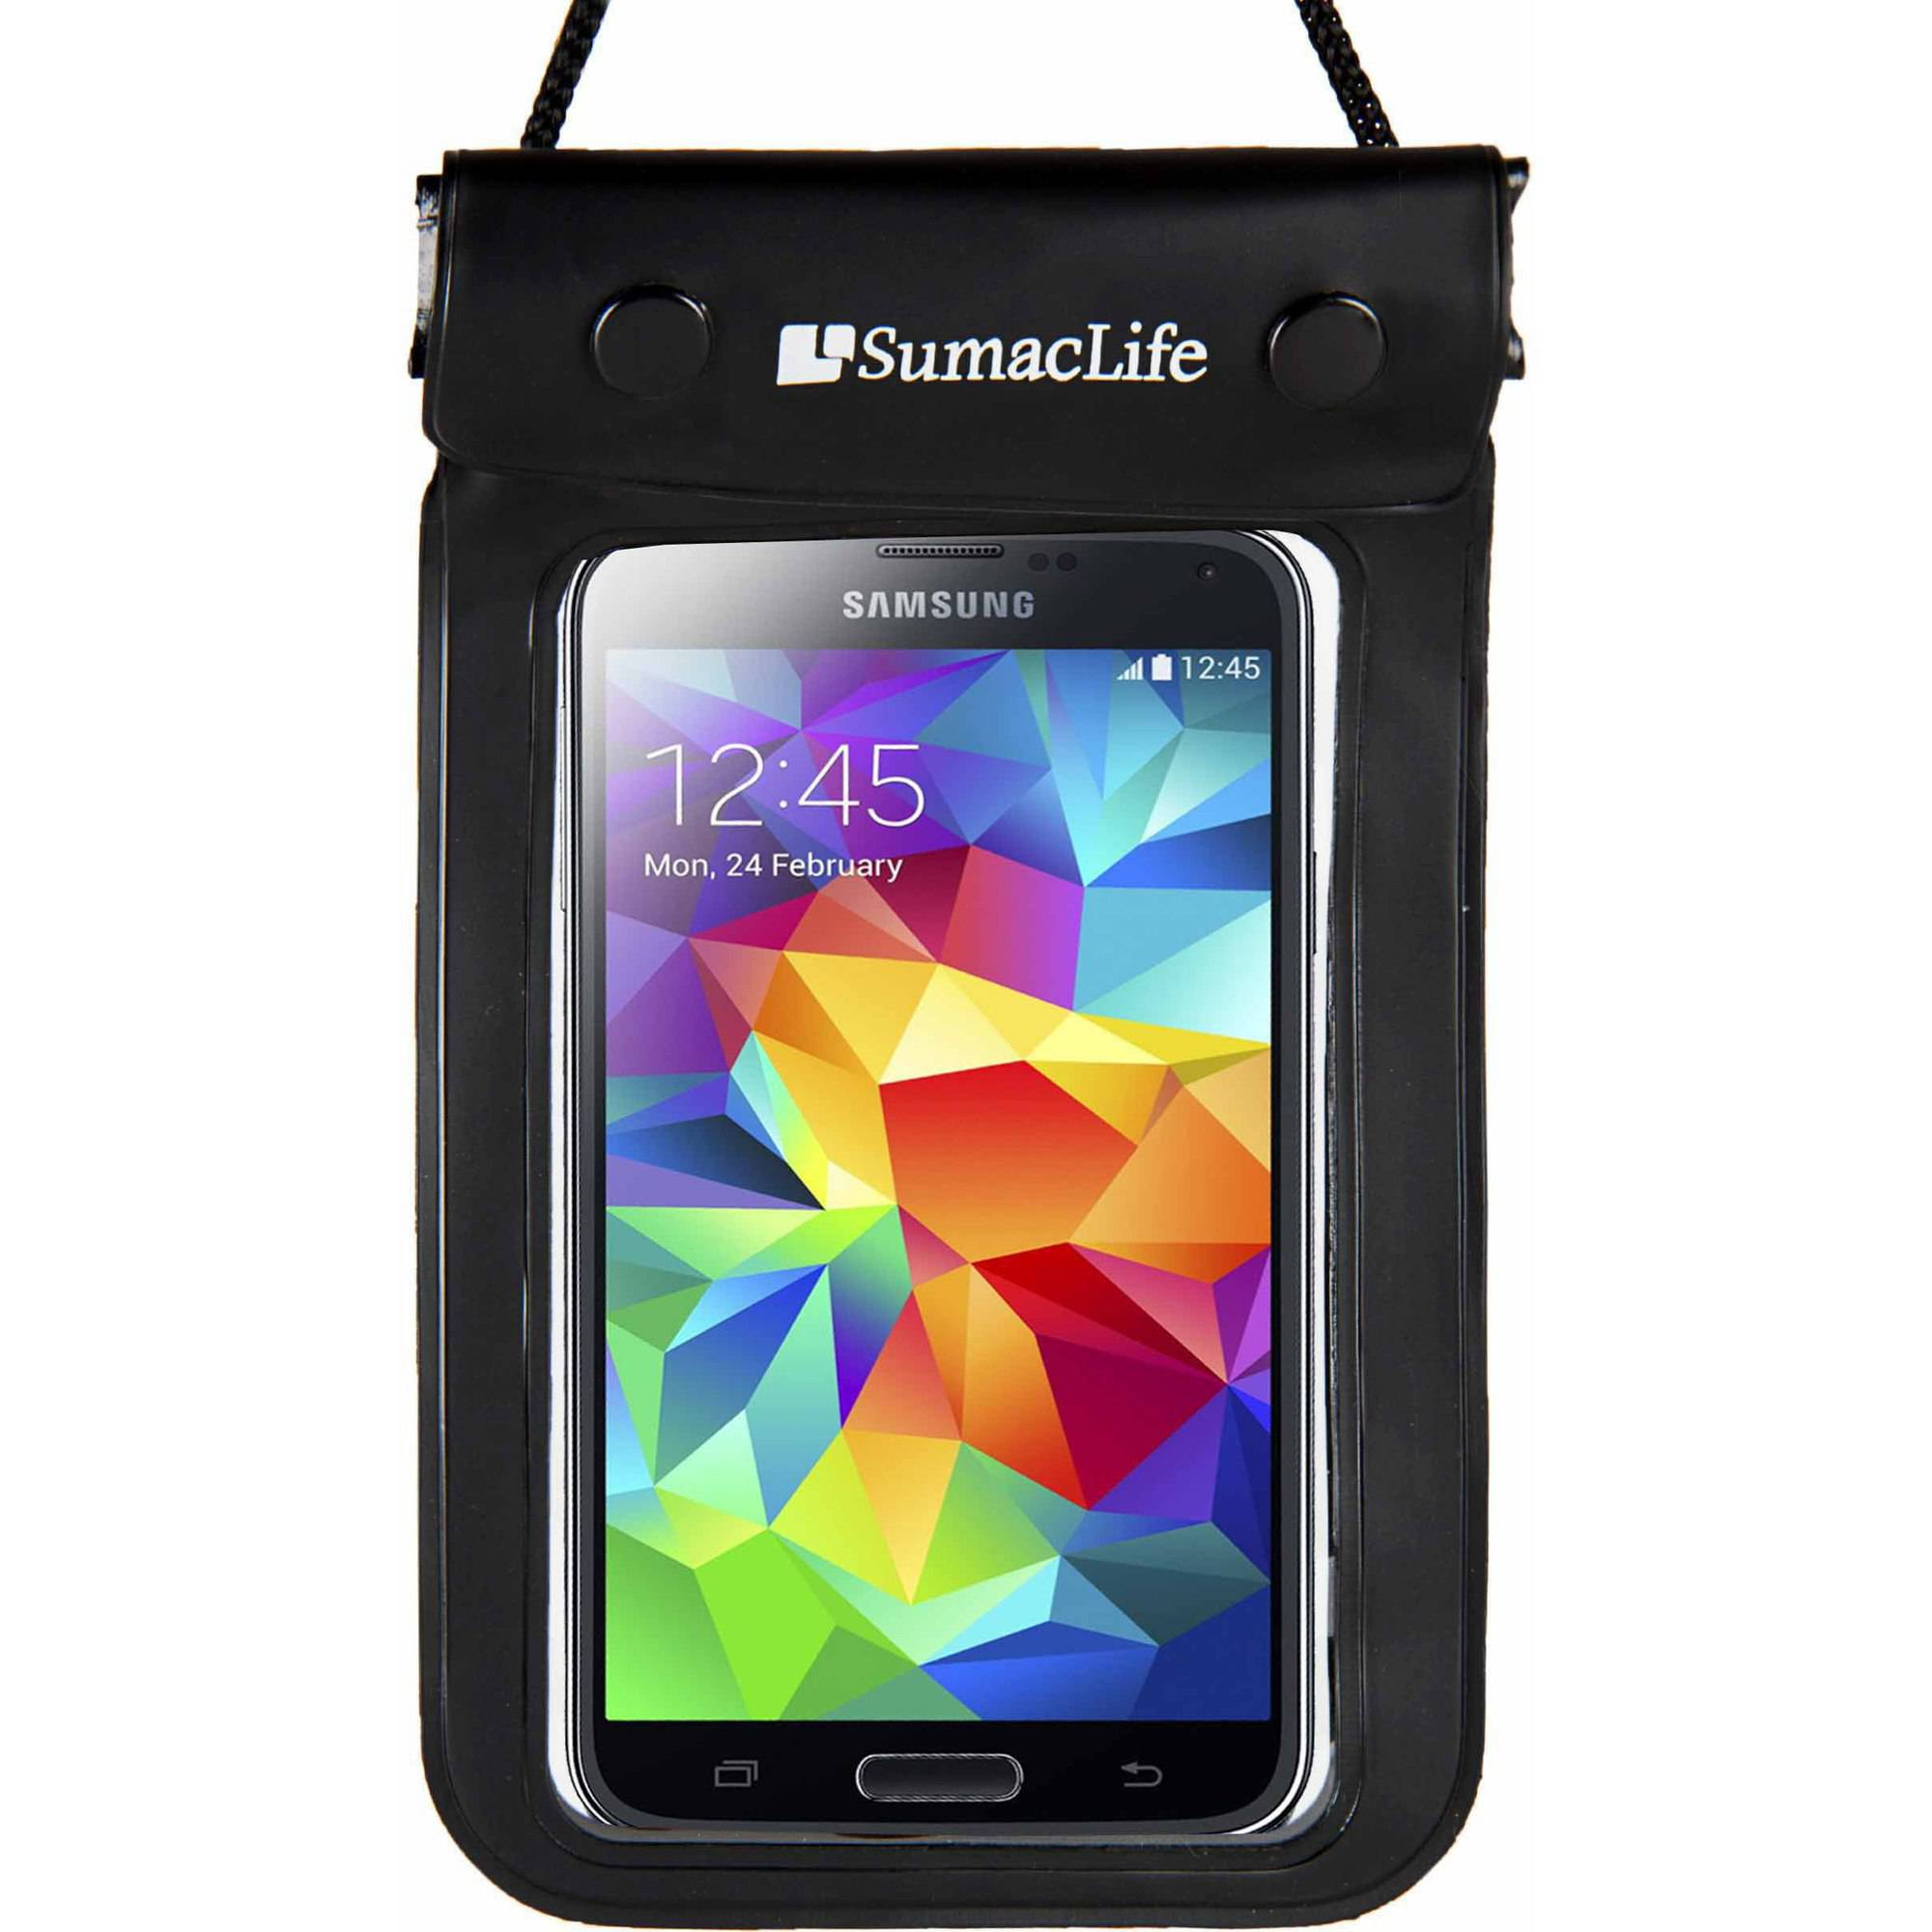 SUMACLIFE Waterproof Triple Zip Clear Case Carrying Bag (with Lanyard) for Smartphones up to 6in x 3.5in